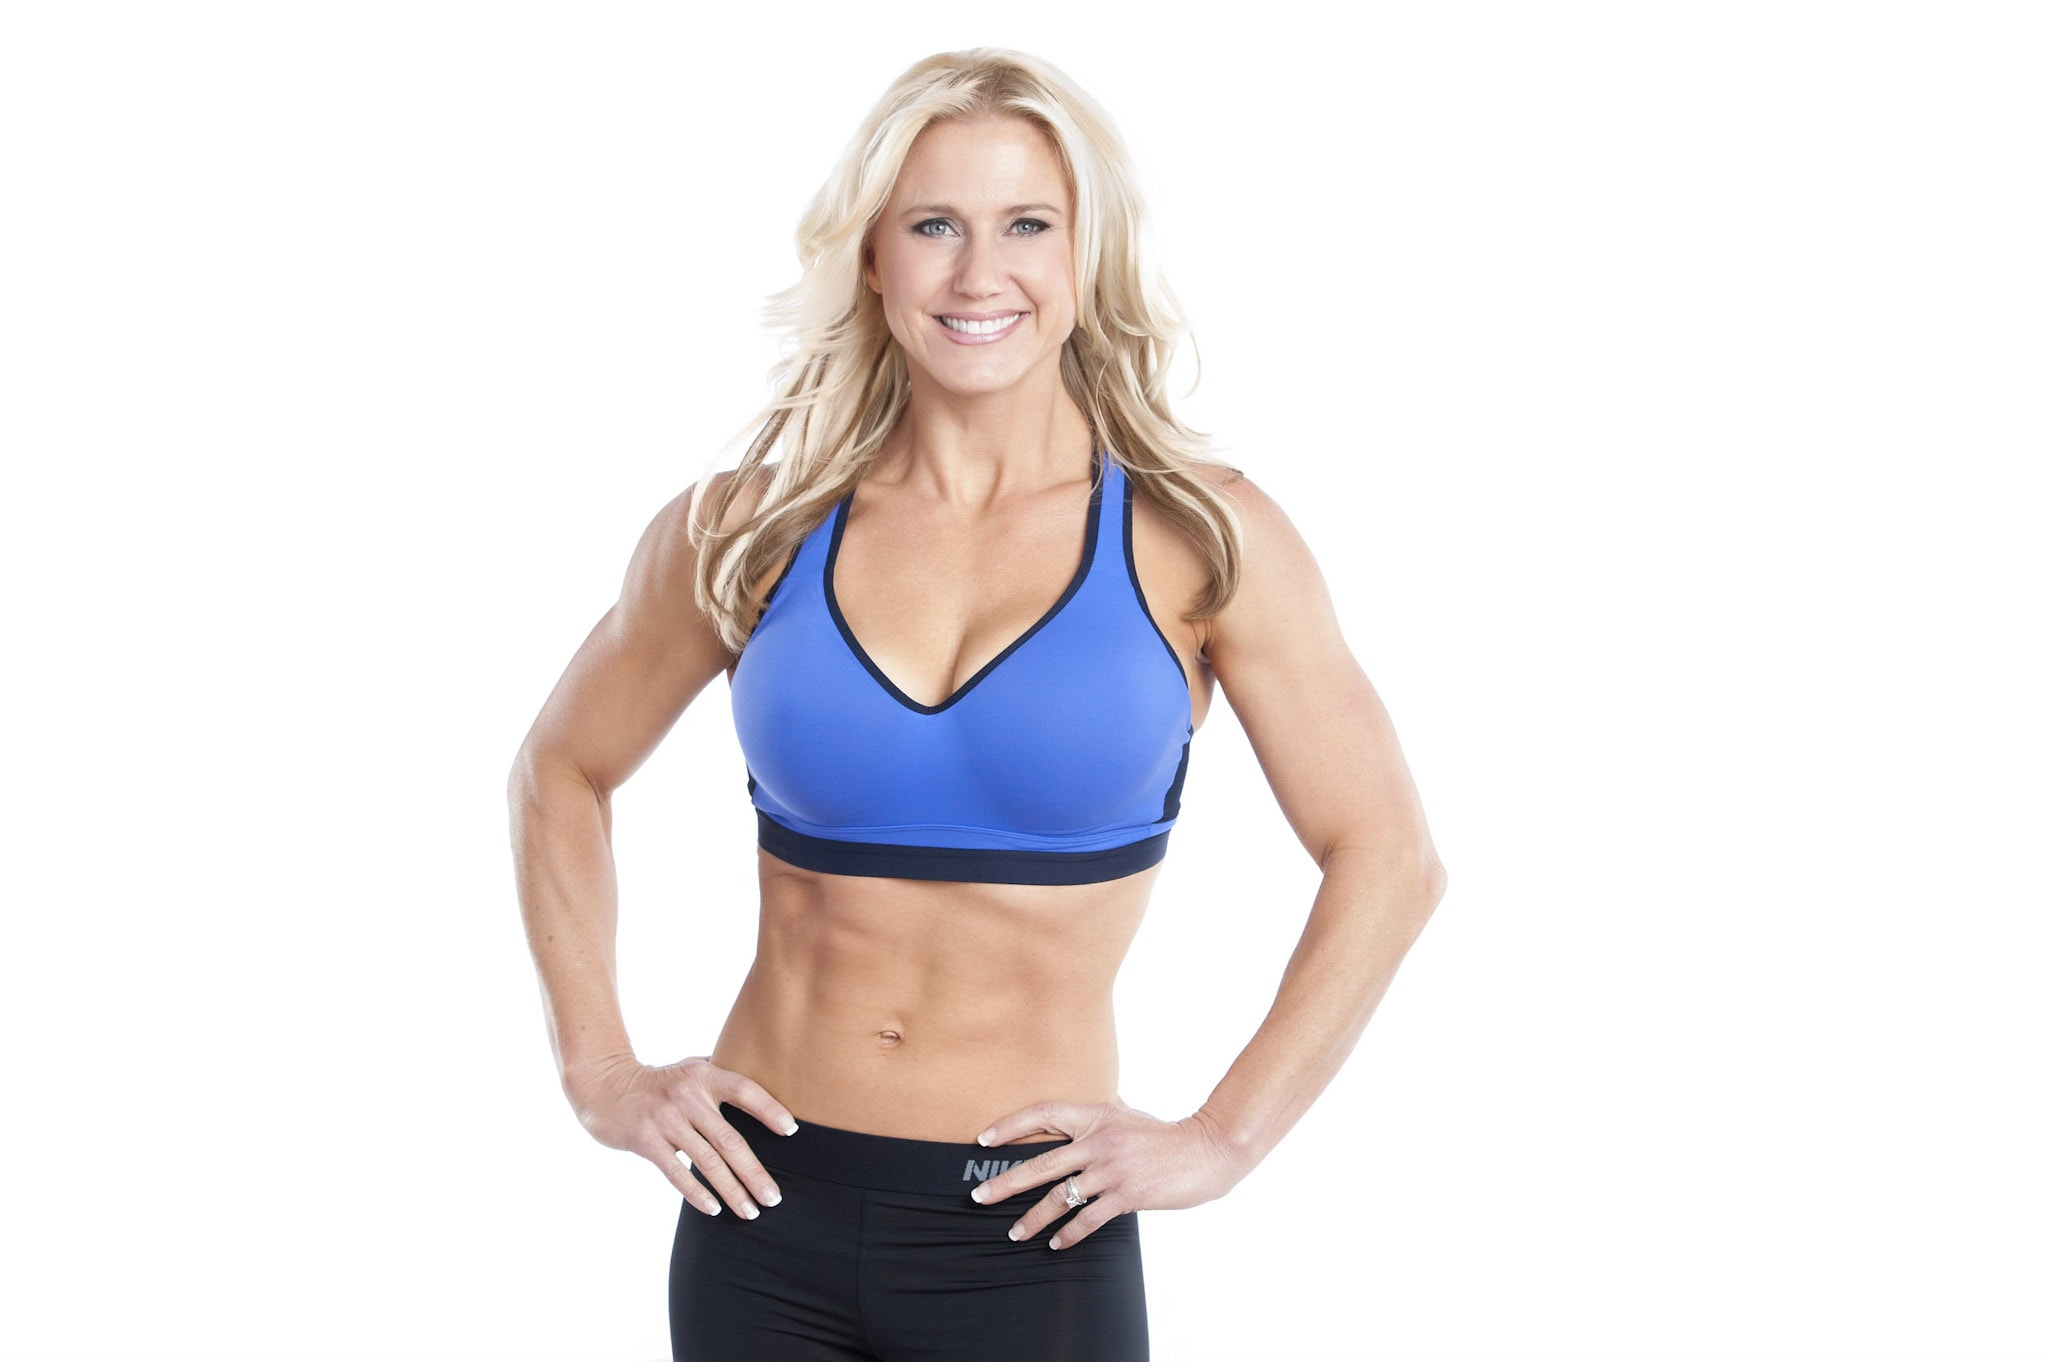 Abs workout for women with Julie Lohre